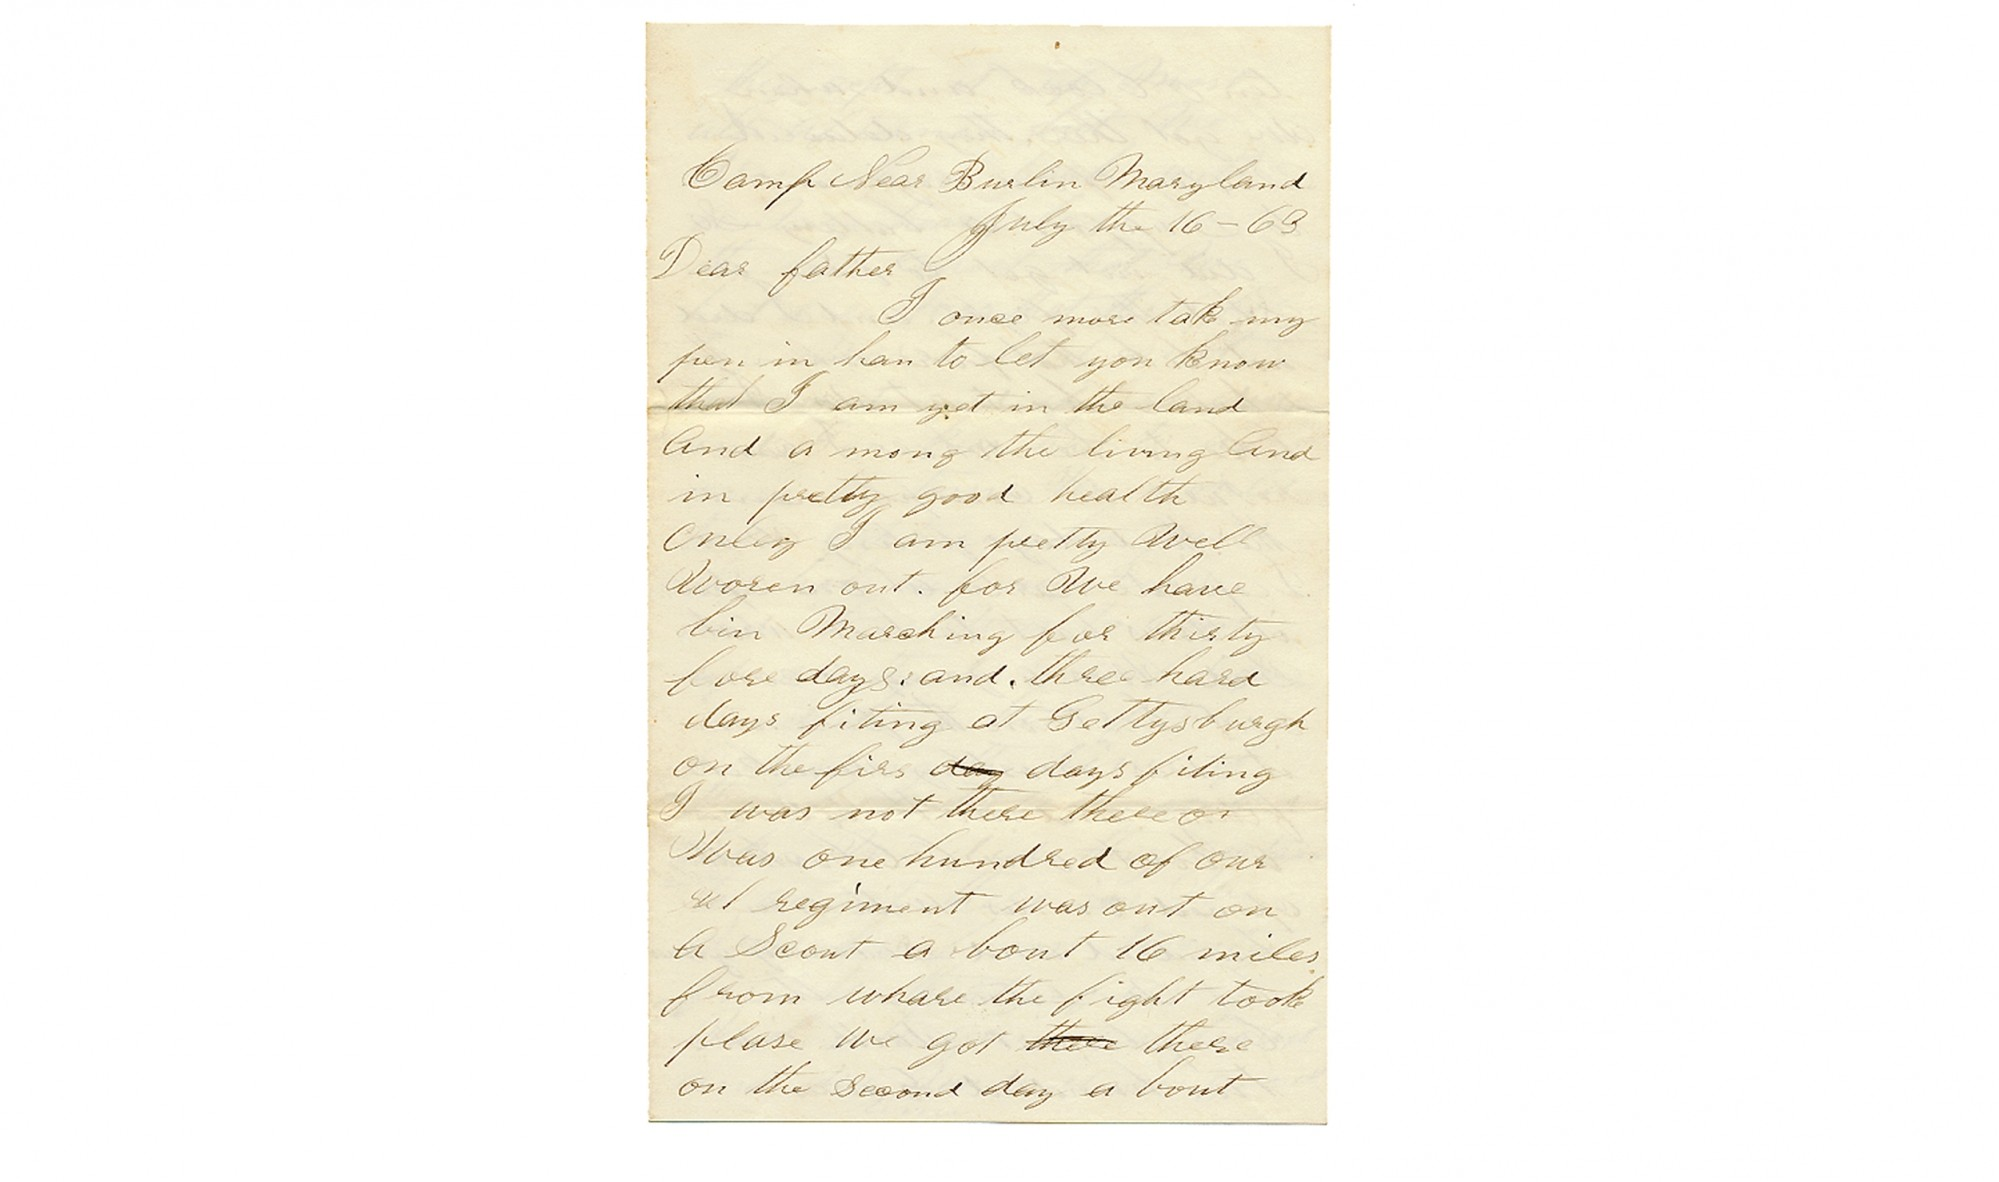 61st OHIO SOLDIER'S LETTER – EYEWITNESS TO THE BATTLE OF GETTYSBURG